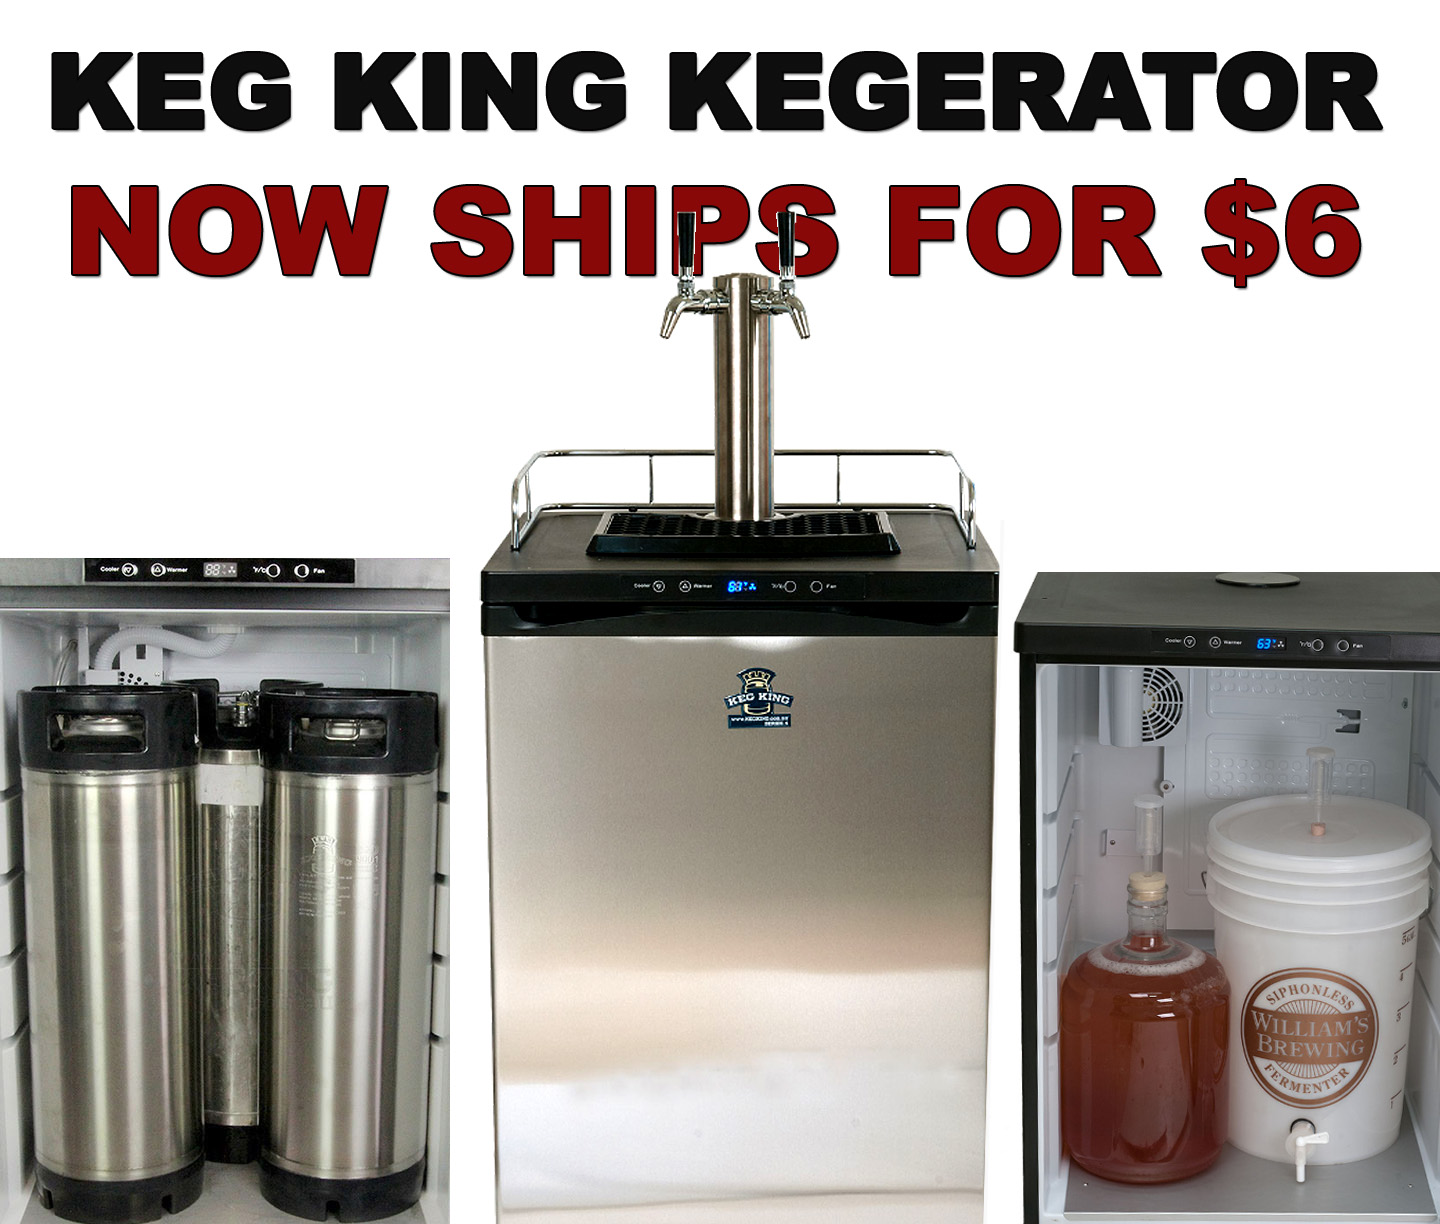 Get $6.99 Shipping On A New Keg King Kegerator Coupon Code